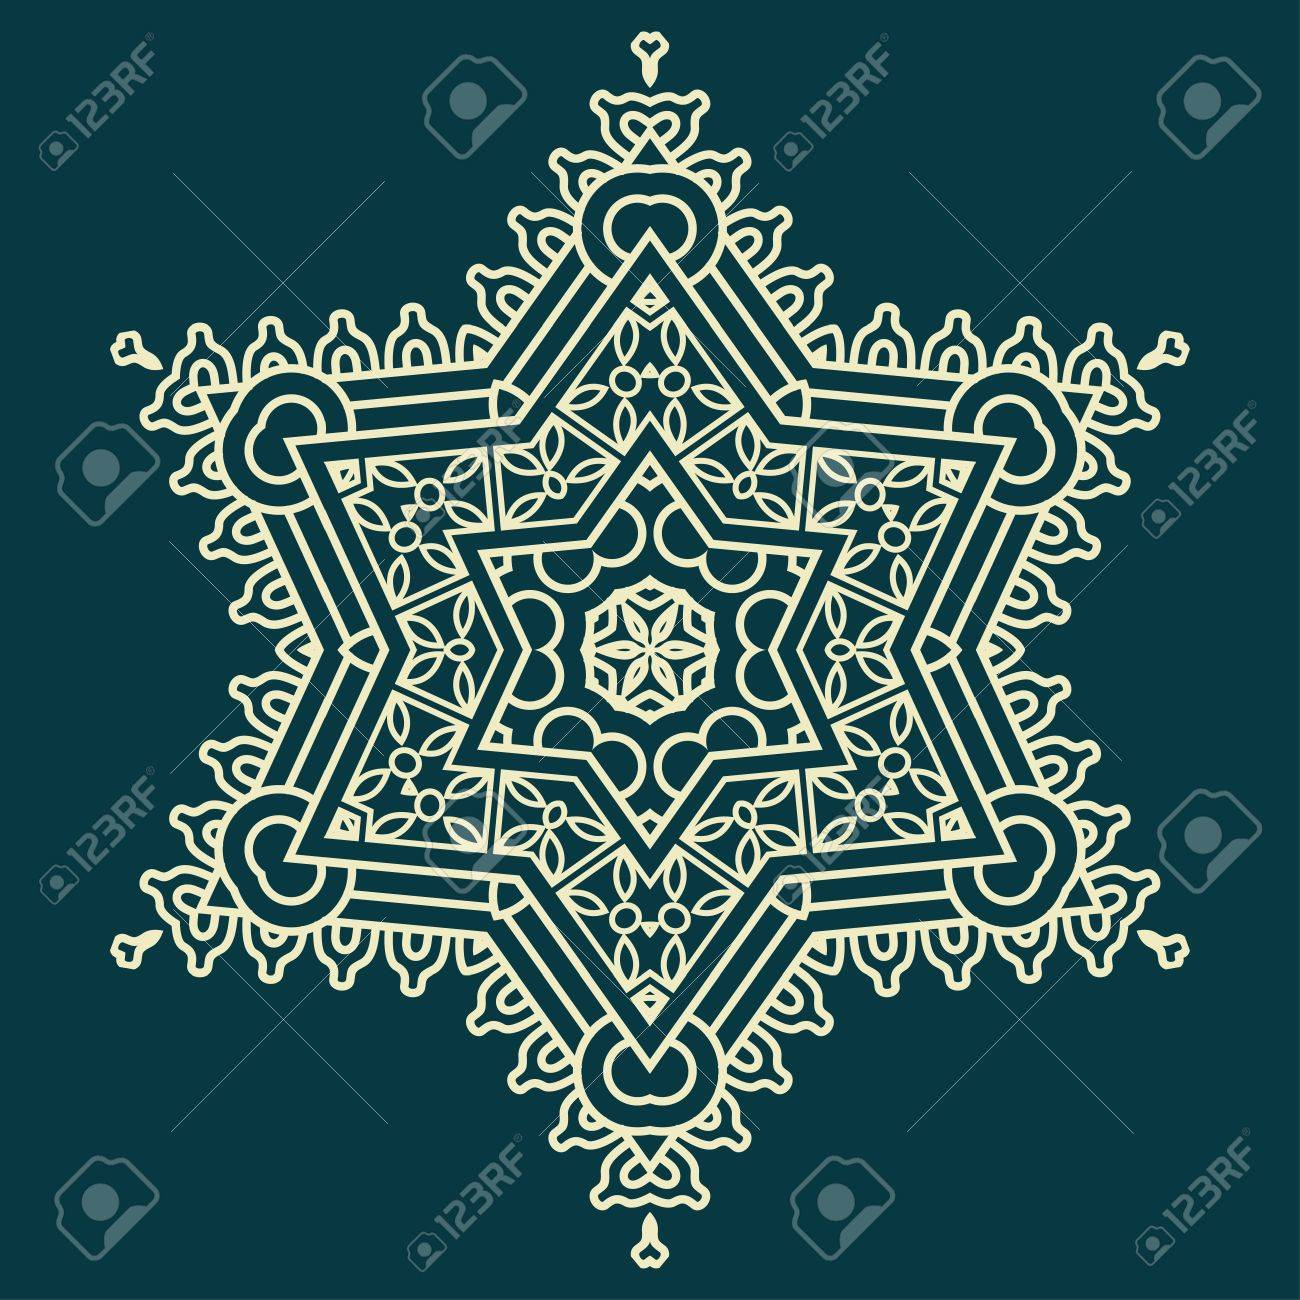 Snowflake on a blue background, element for design Stock Vector - 15031212